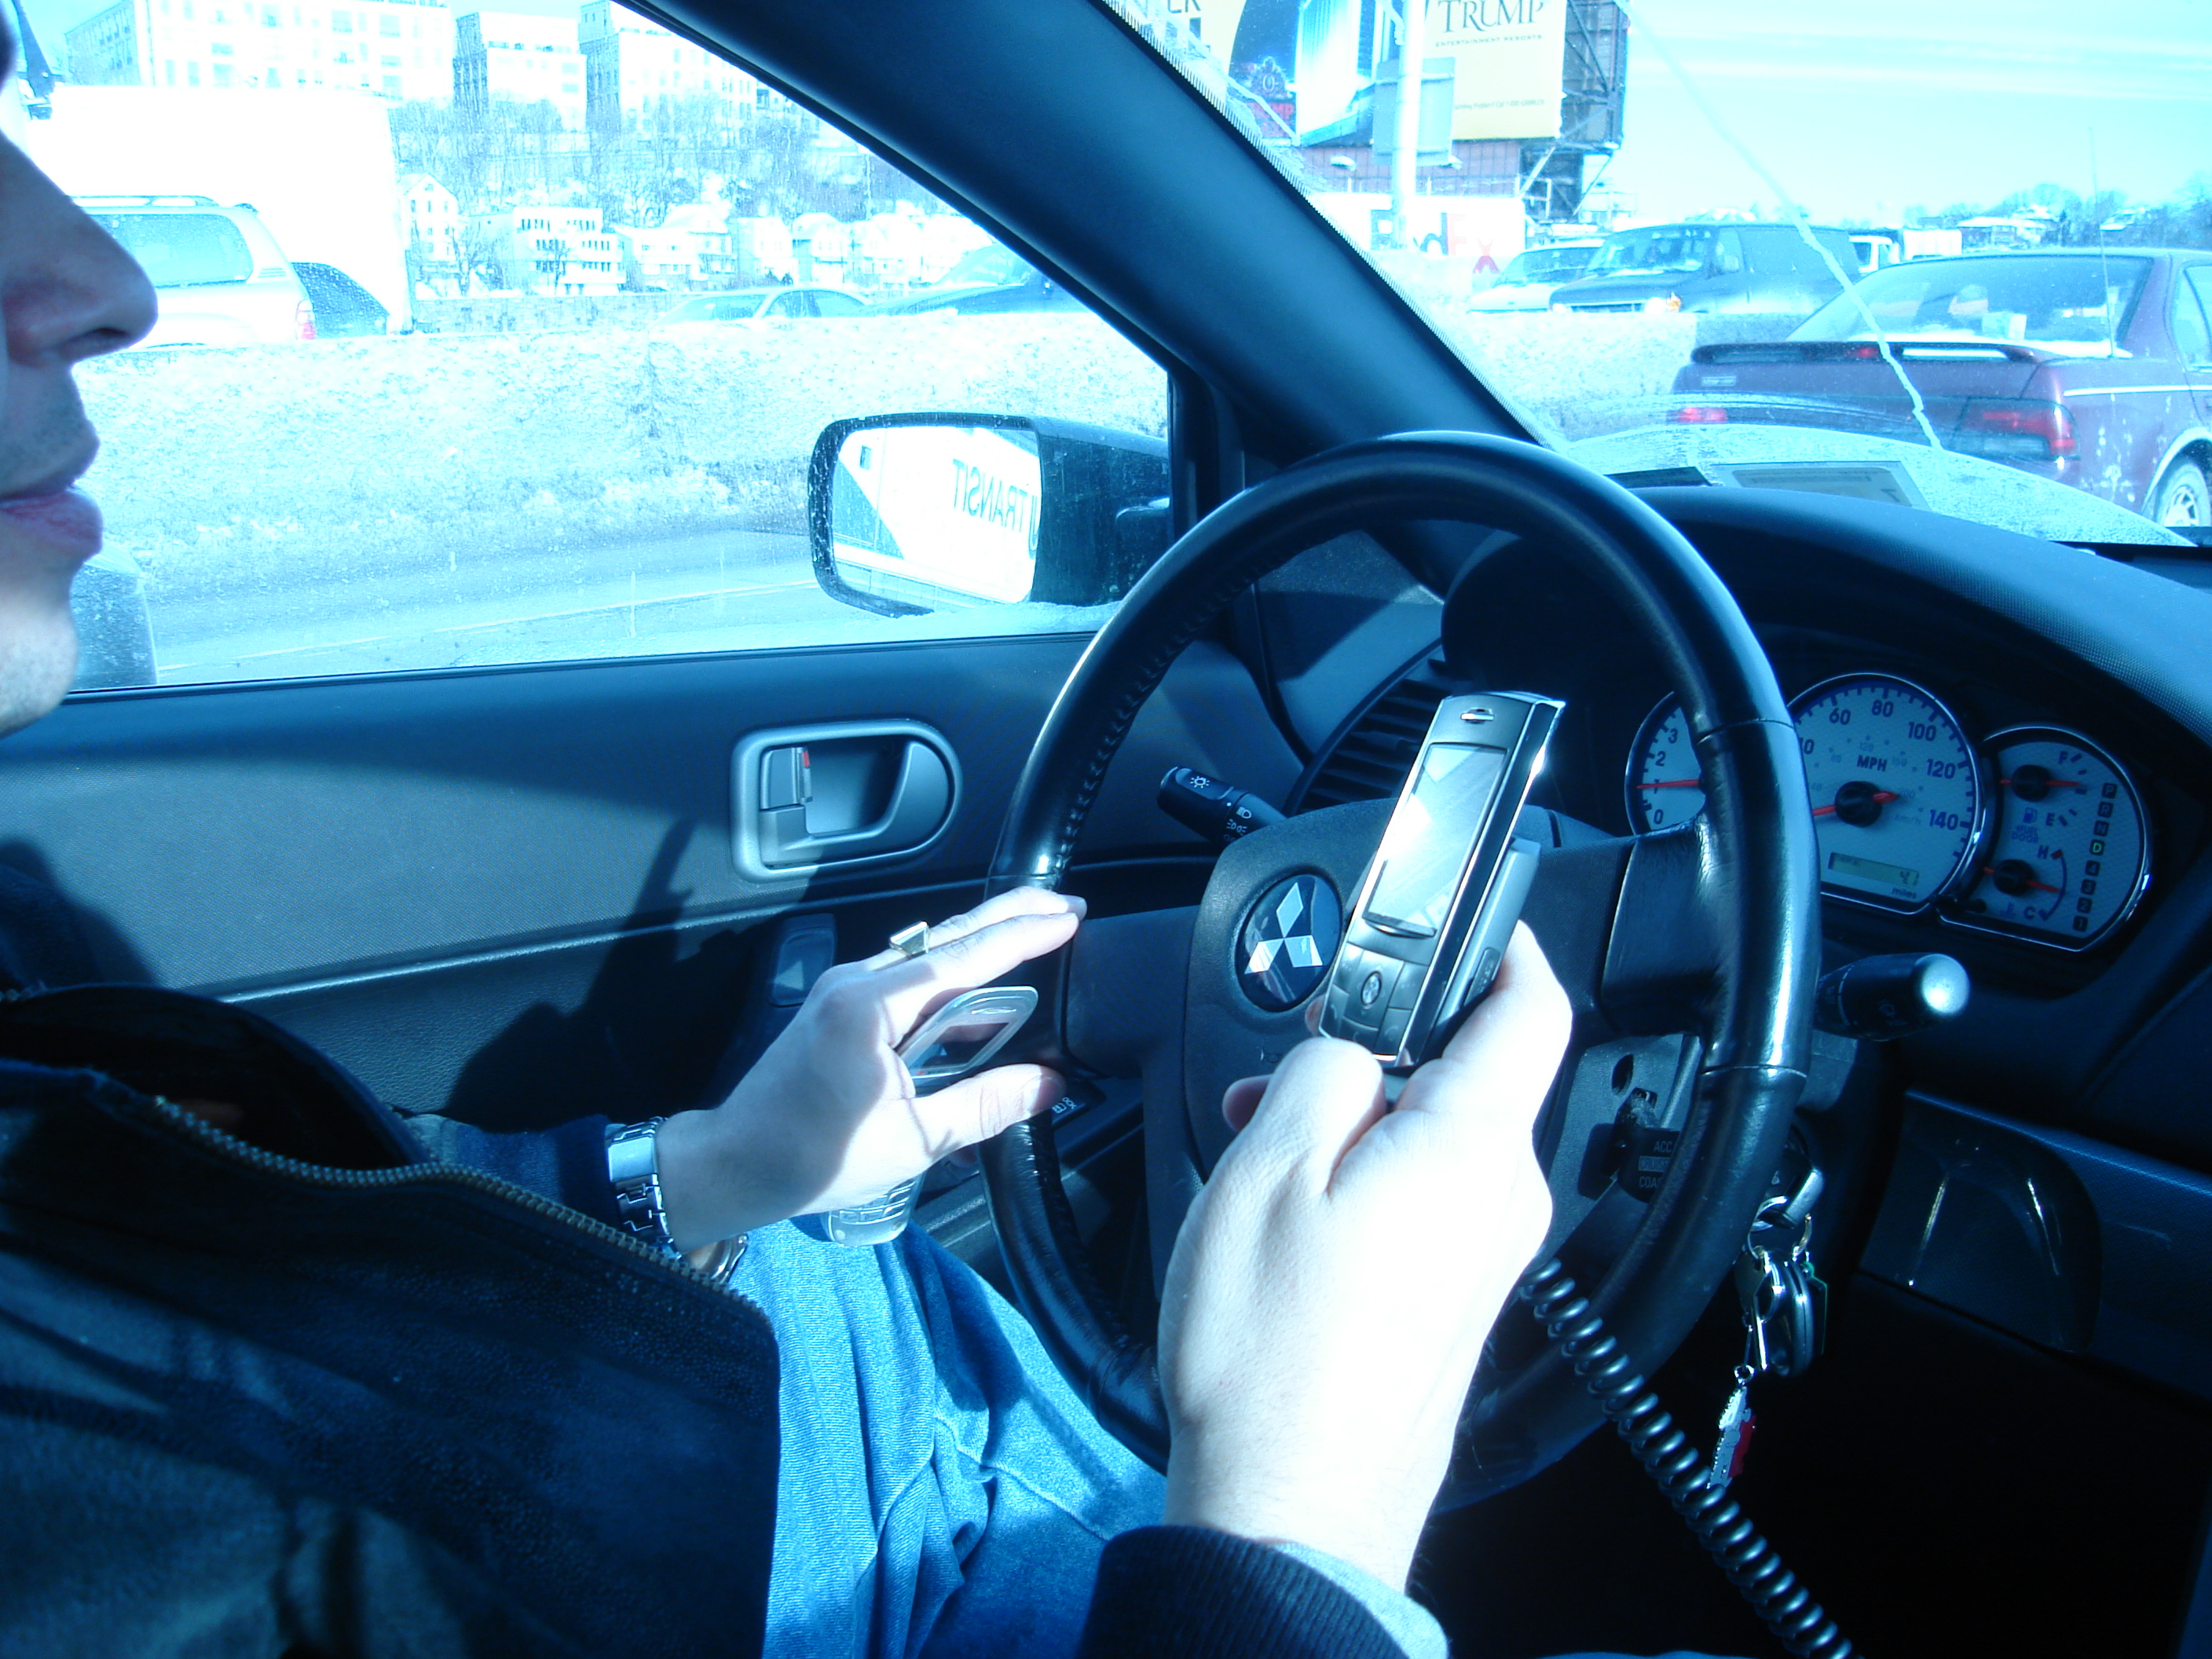 Mobile phones and driving safety - Wikipedia